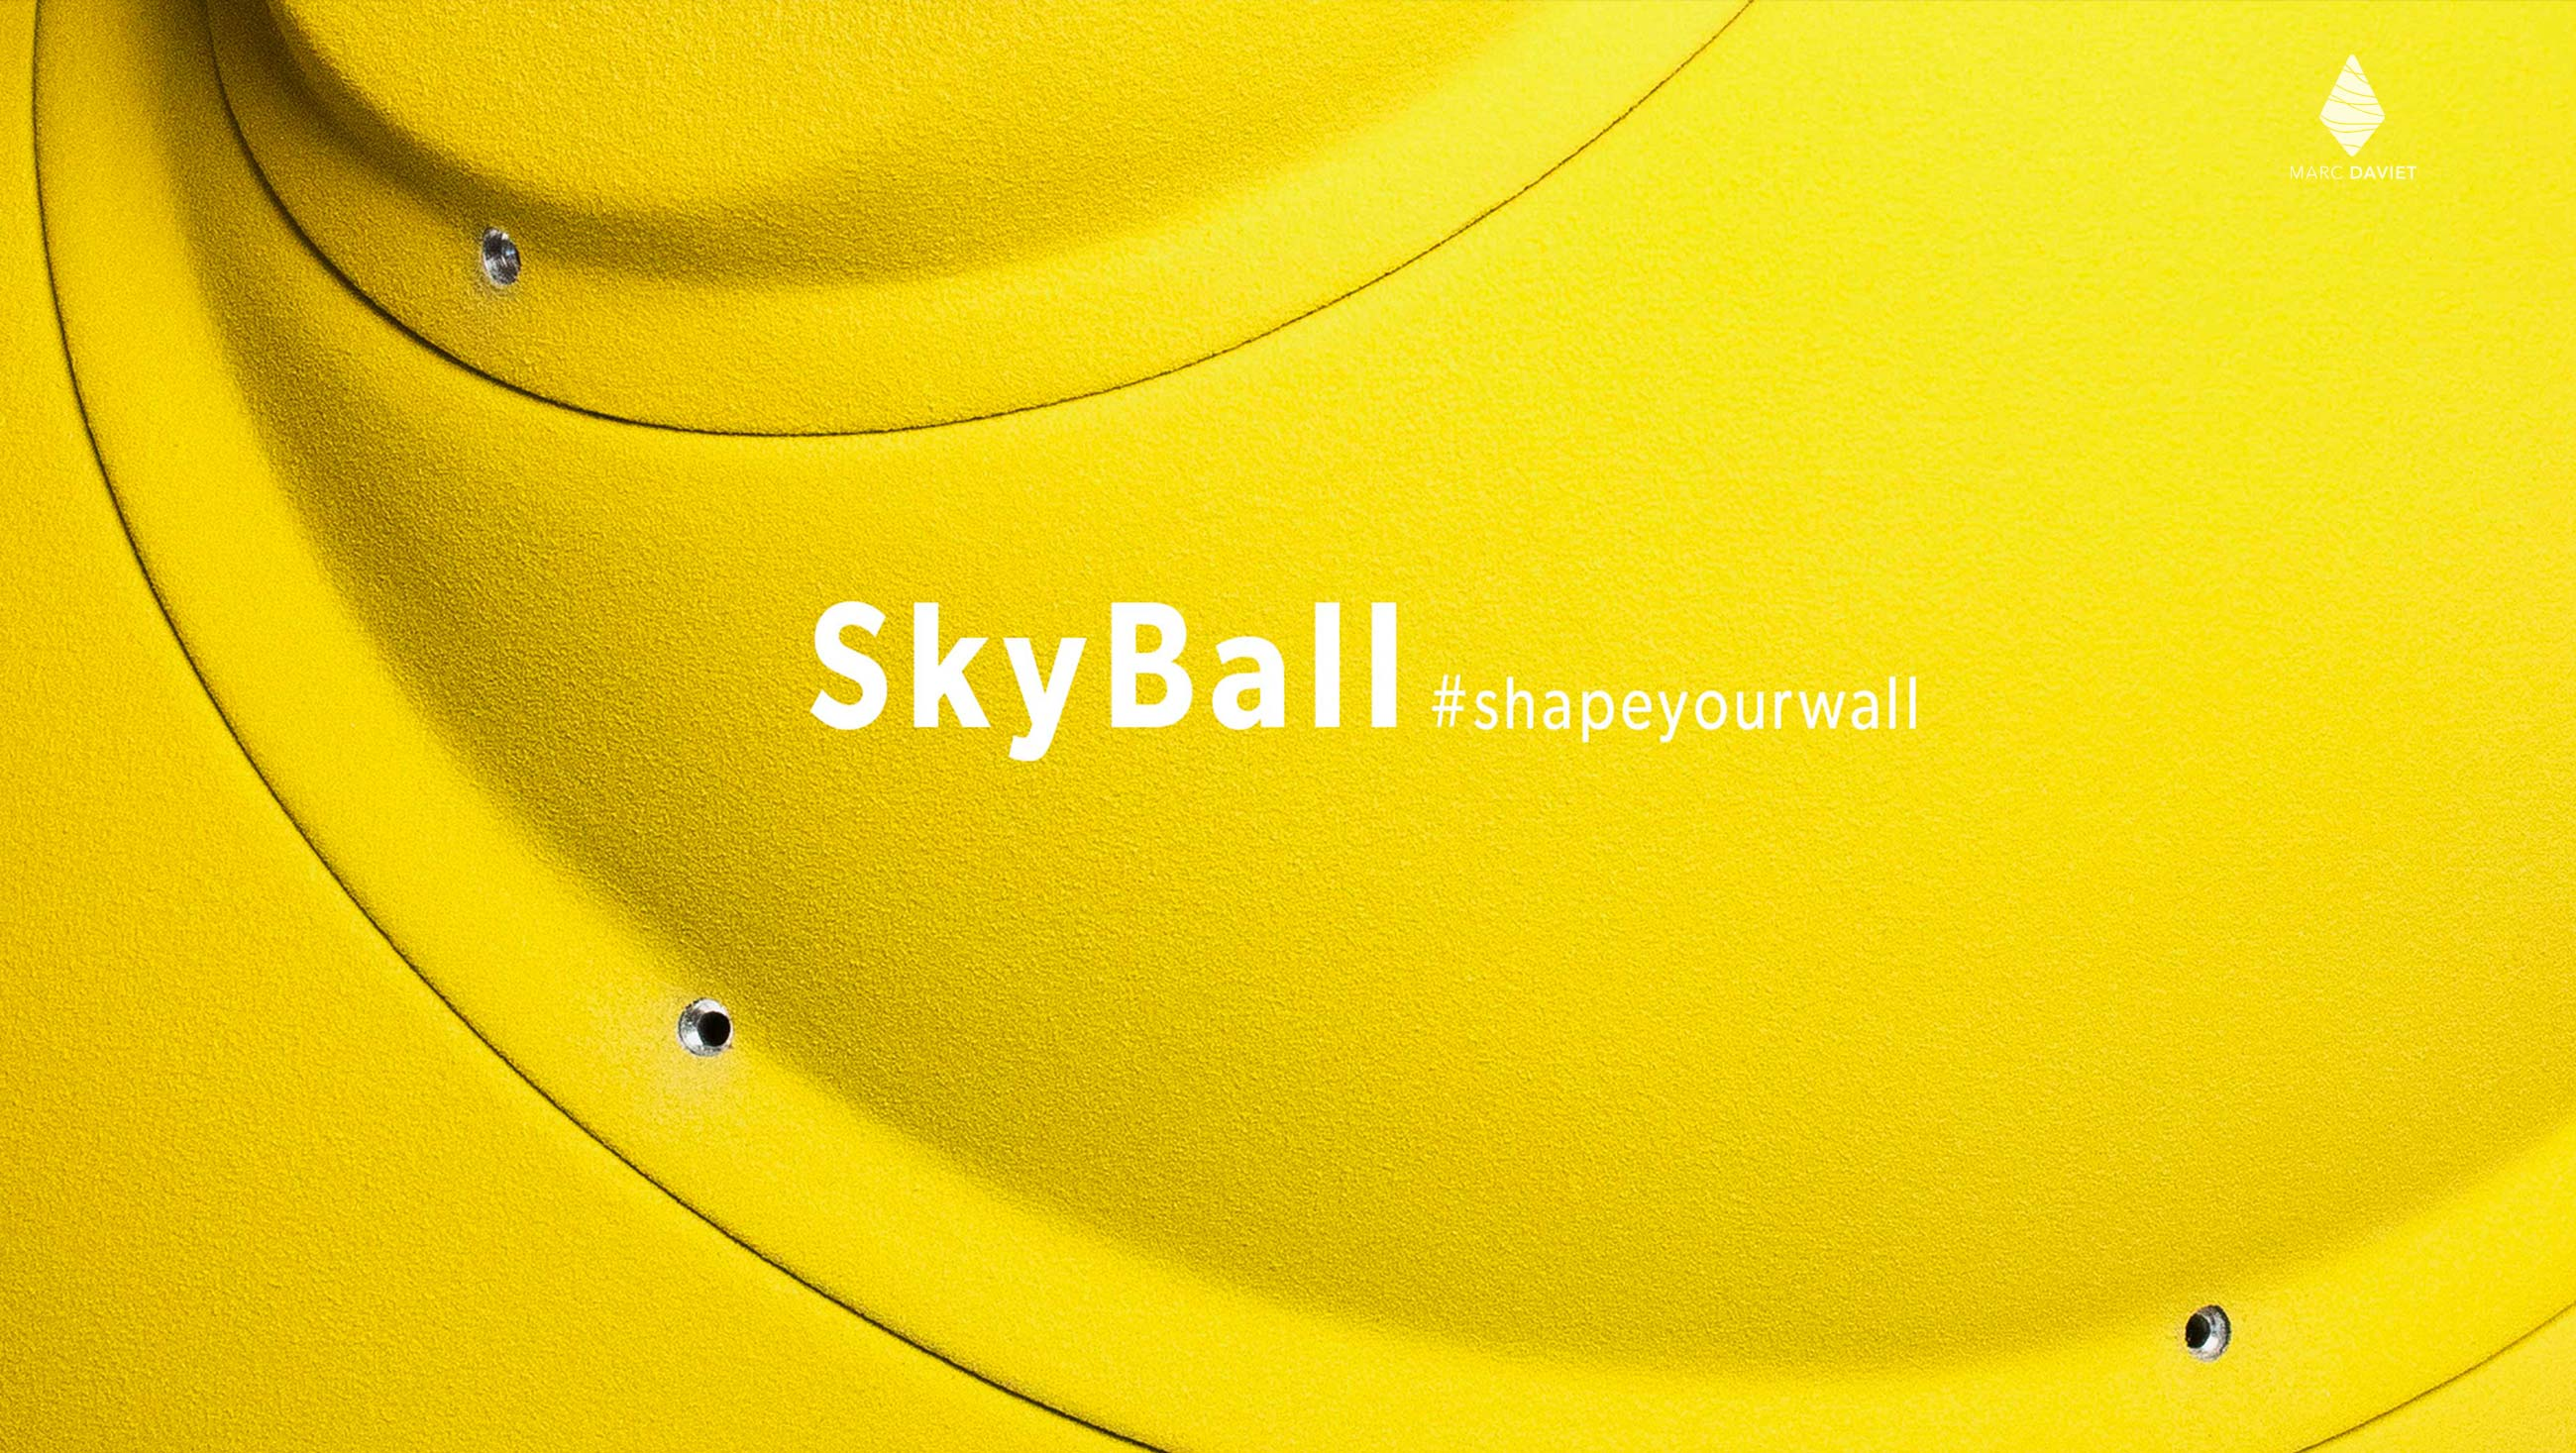 SkyBall by Cheeta